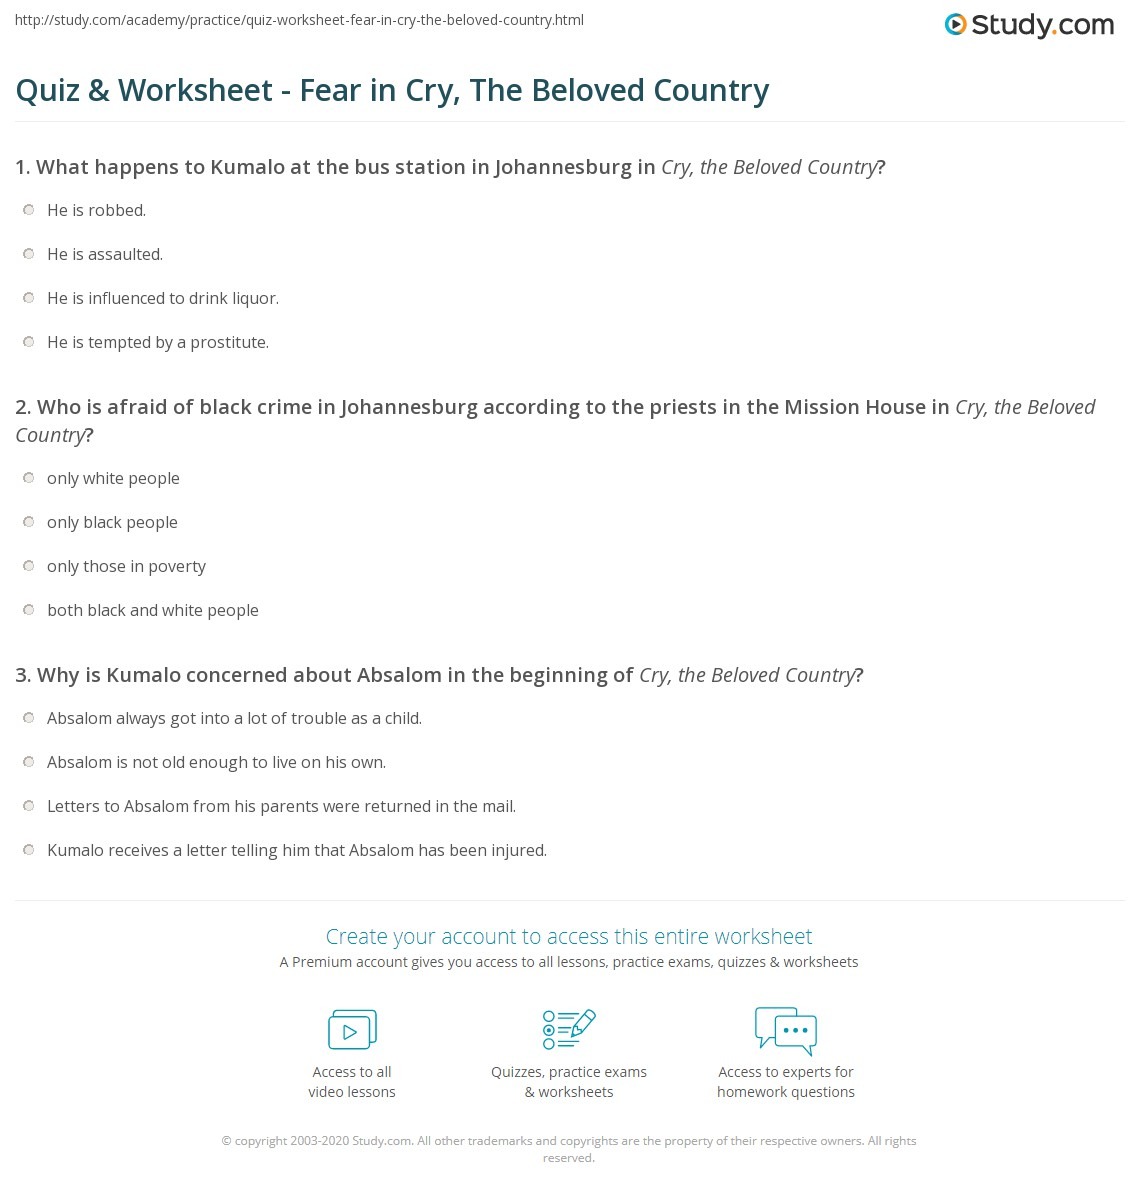 cry beloved country essay fear